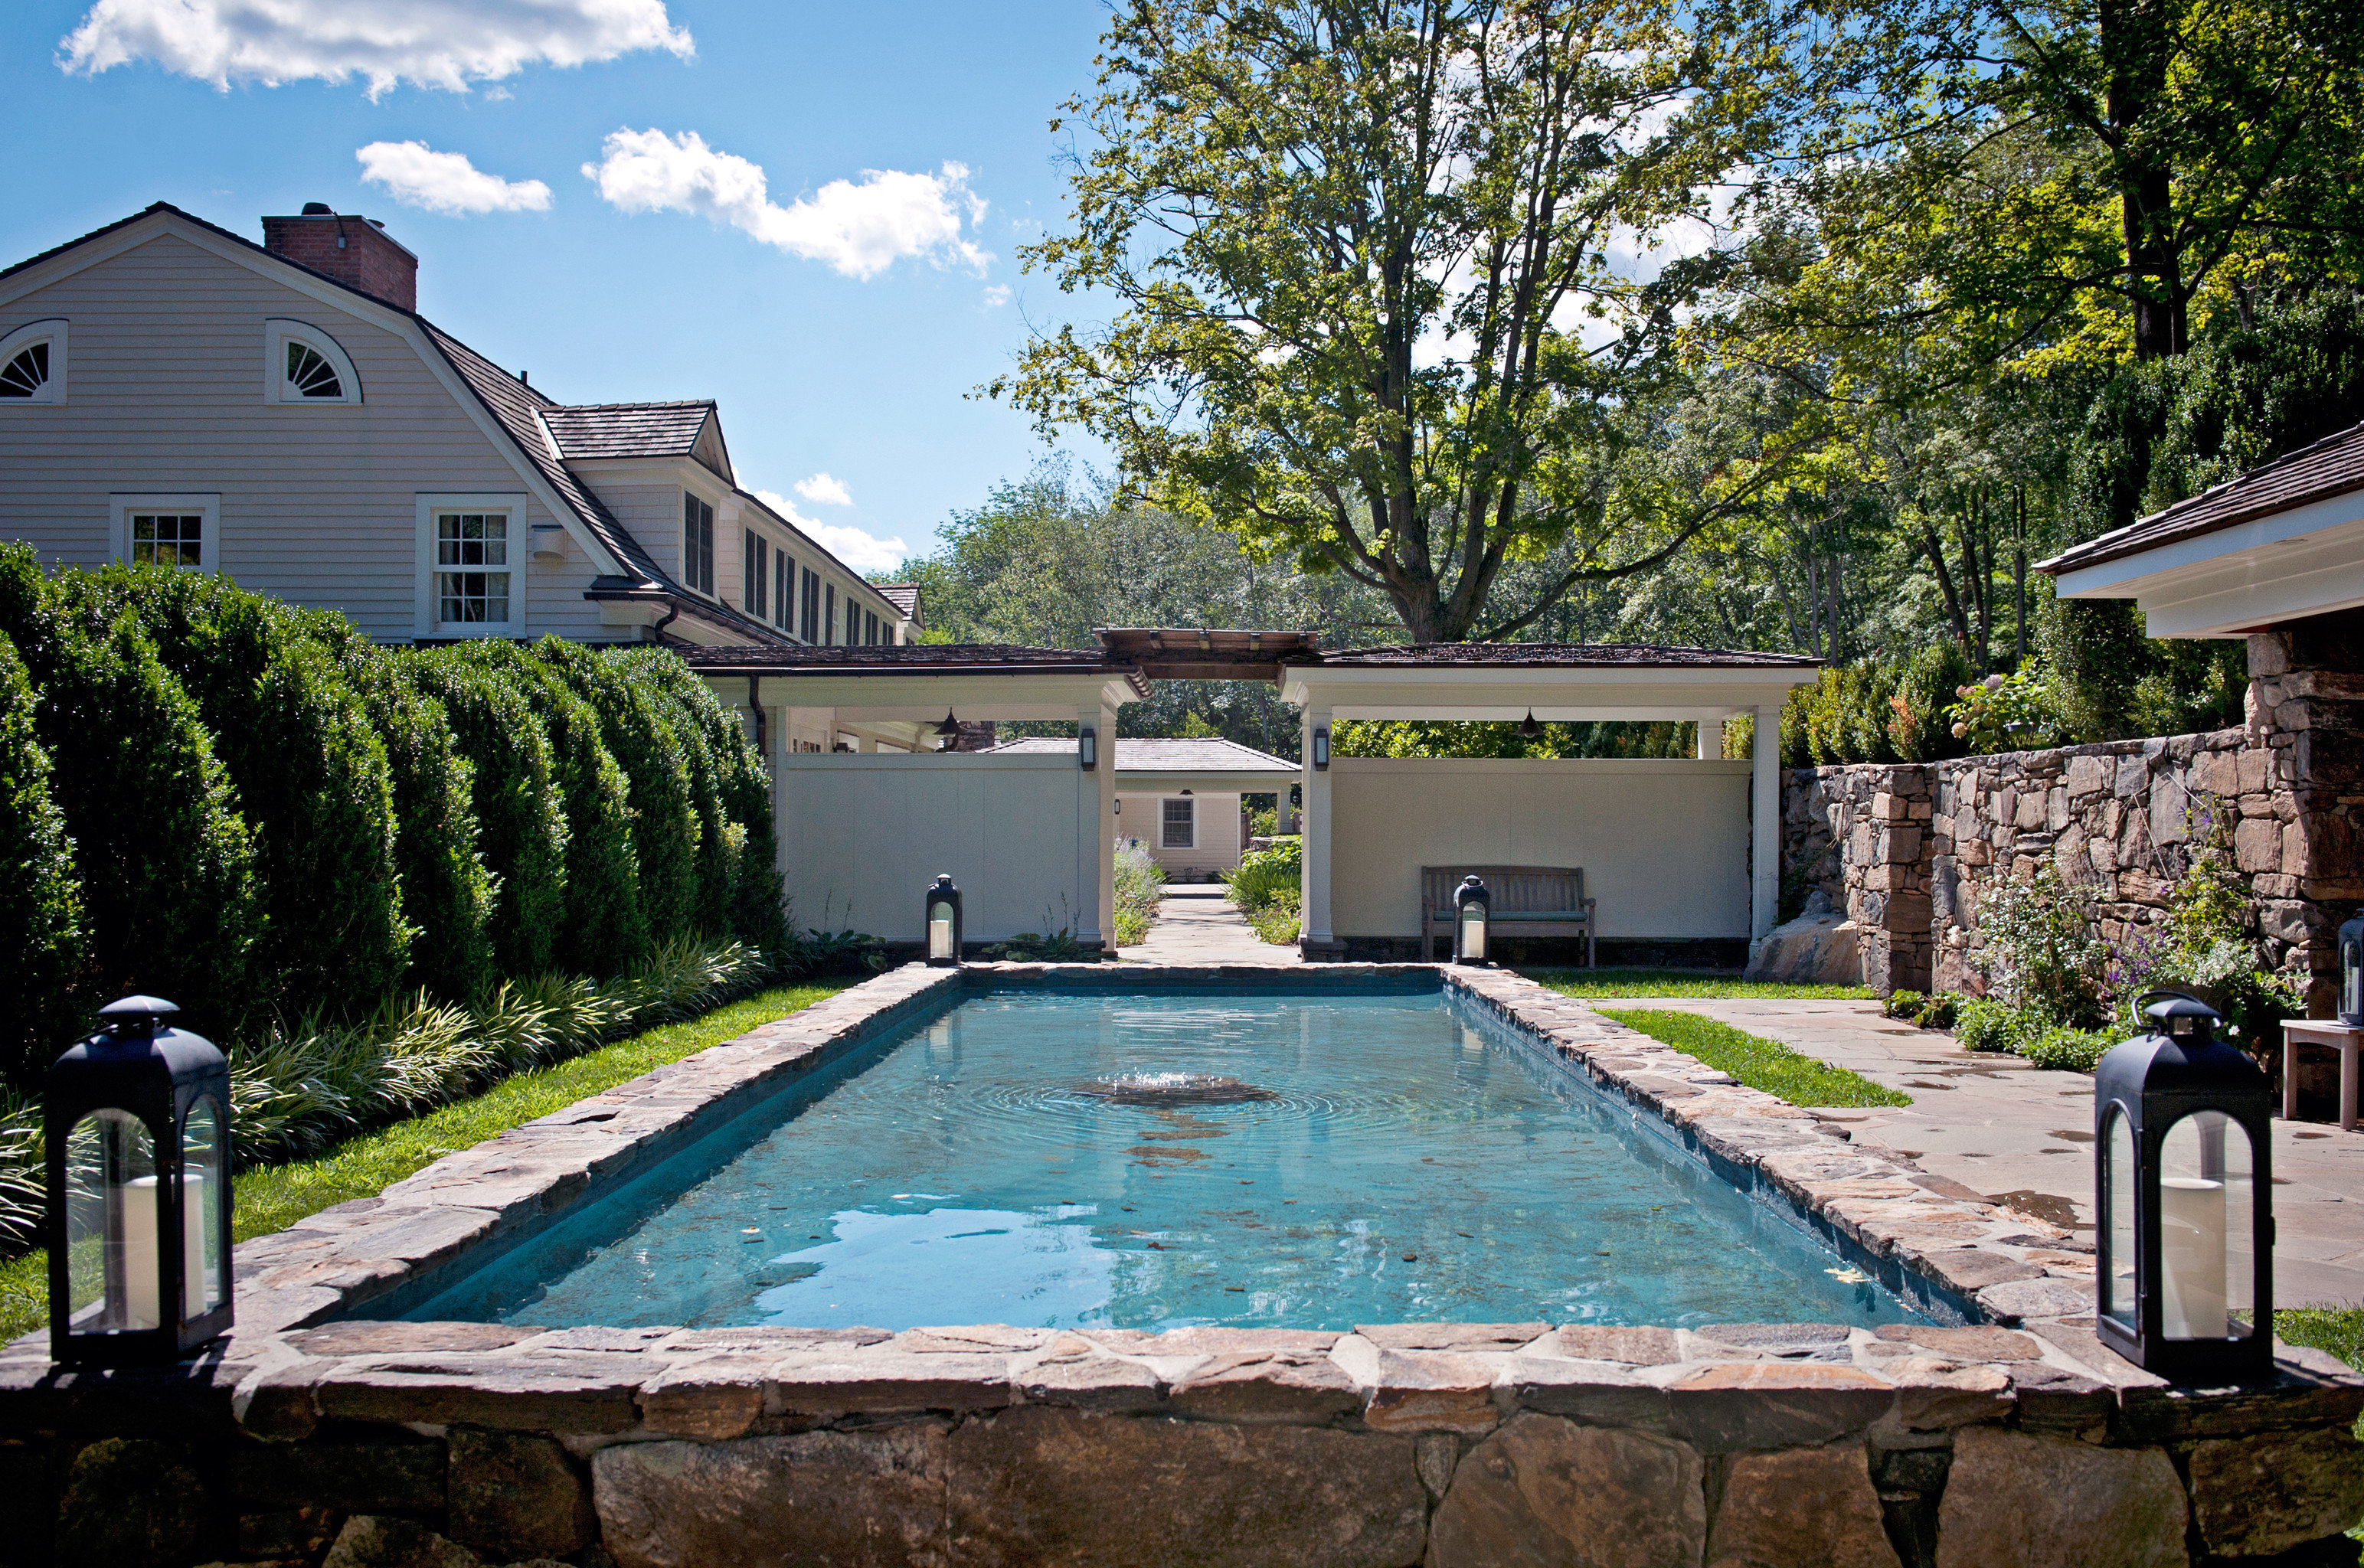 Celebs Country Exterior Hotels Inn Luxury Modern Outdoor Activities Pool tree swimming pool property house building backyard home yard cottage Garden Villa waterway Courtyard mansion